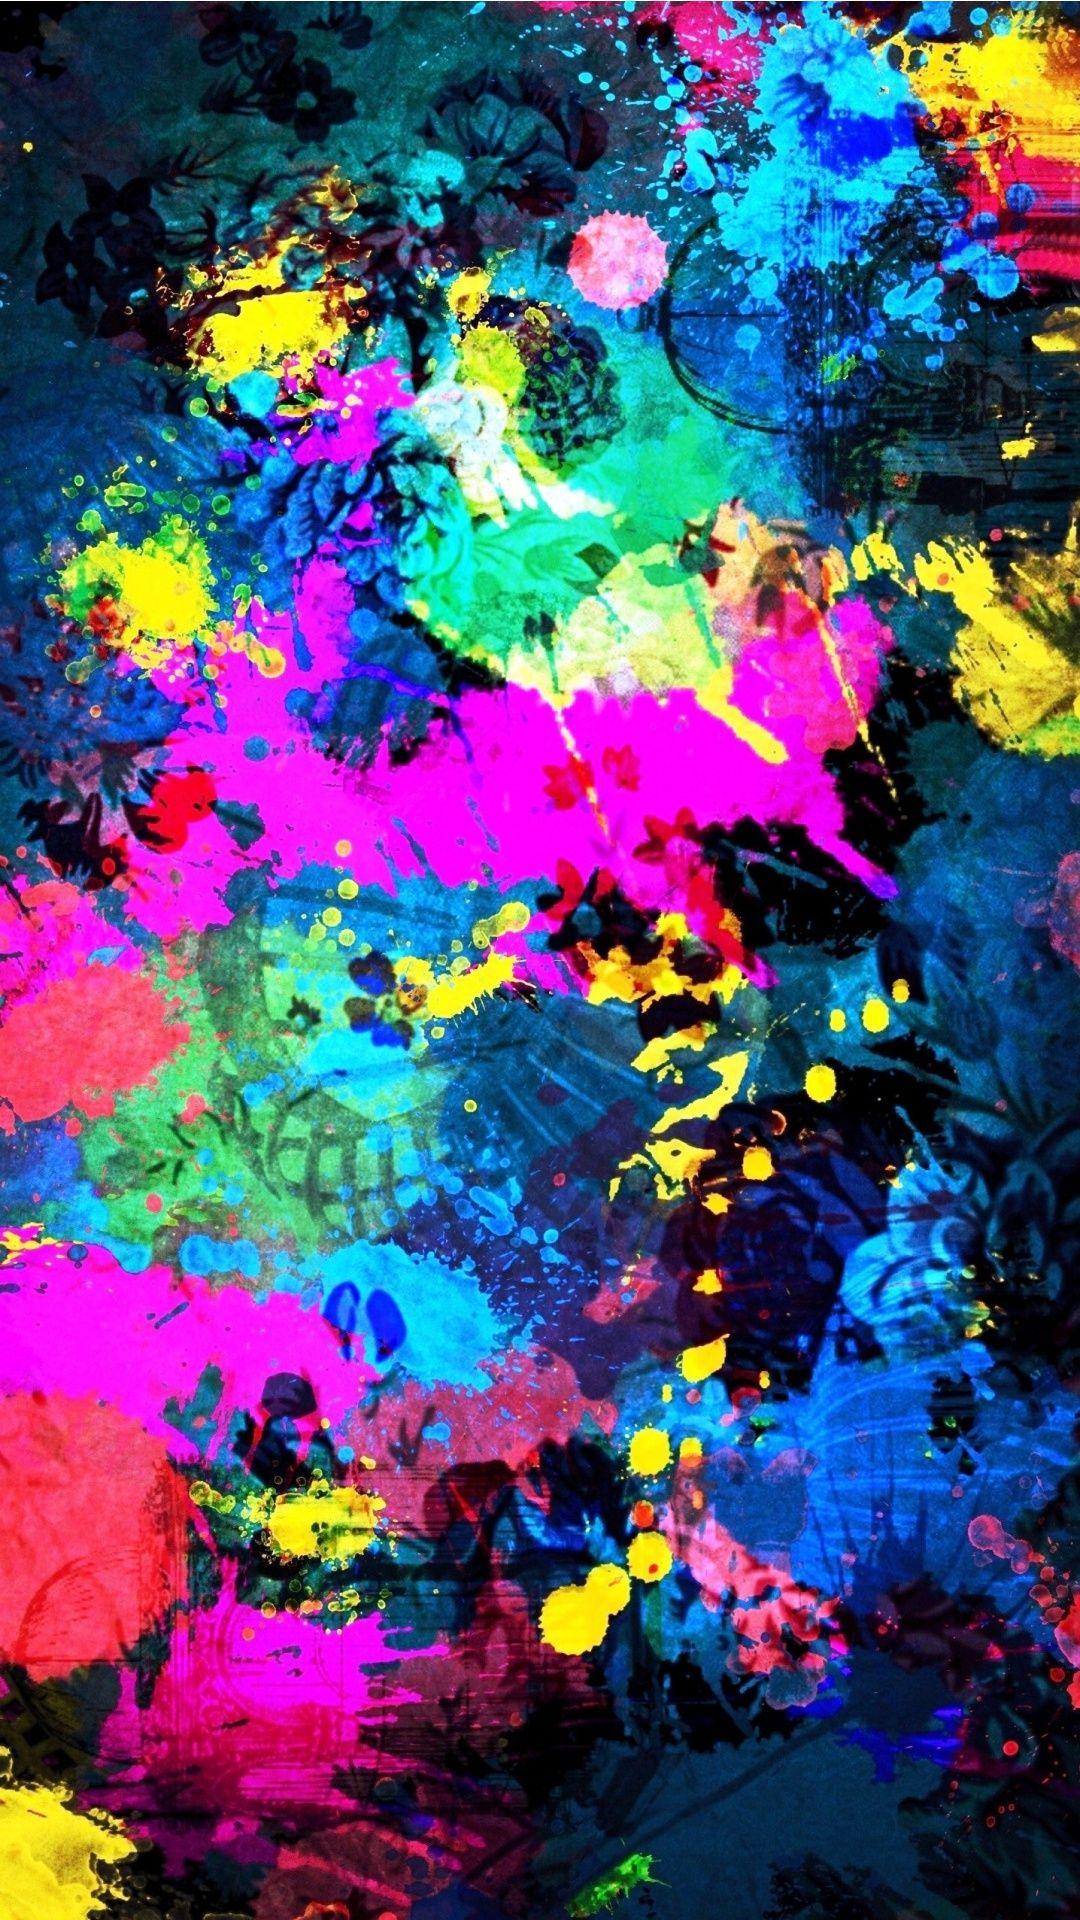 Great 5 Colorful Wallpapers High Definition For Your Android Or Iphone Wallpapers Android Iphone Wal Artistic Wallpaper Graffiti Wallpaper Android Wallpaper